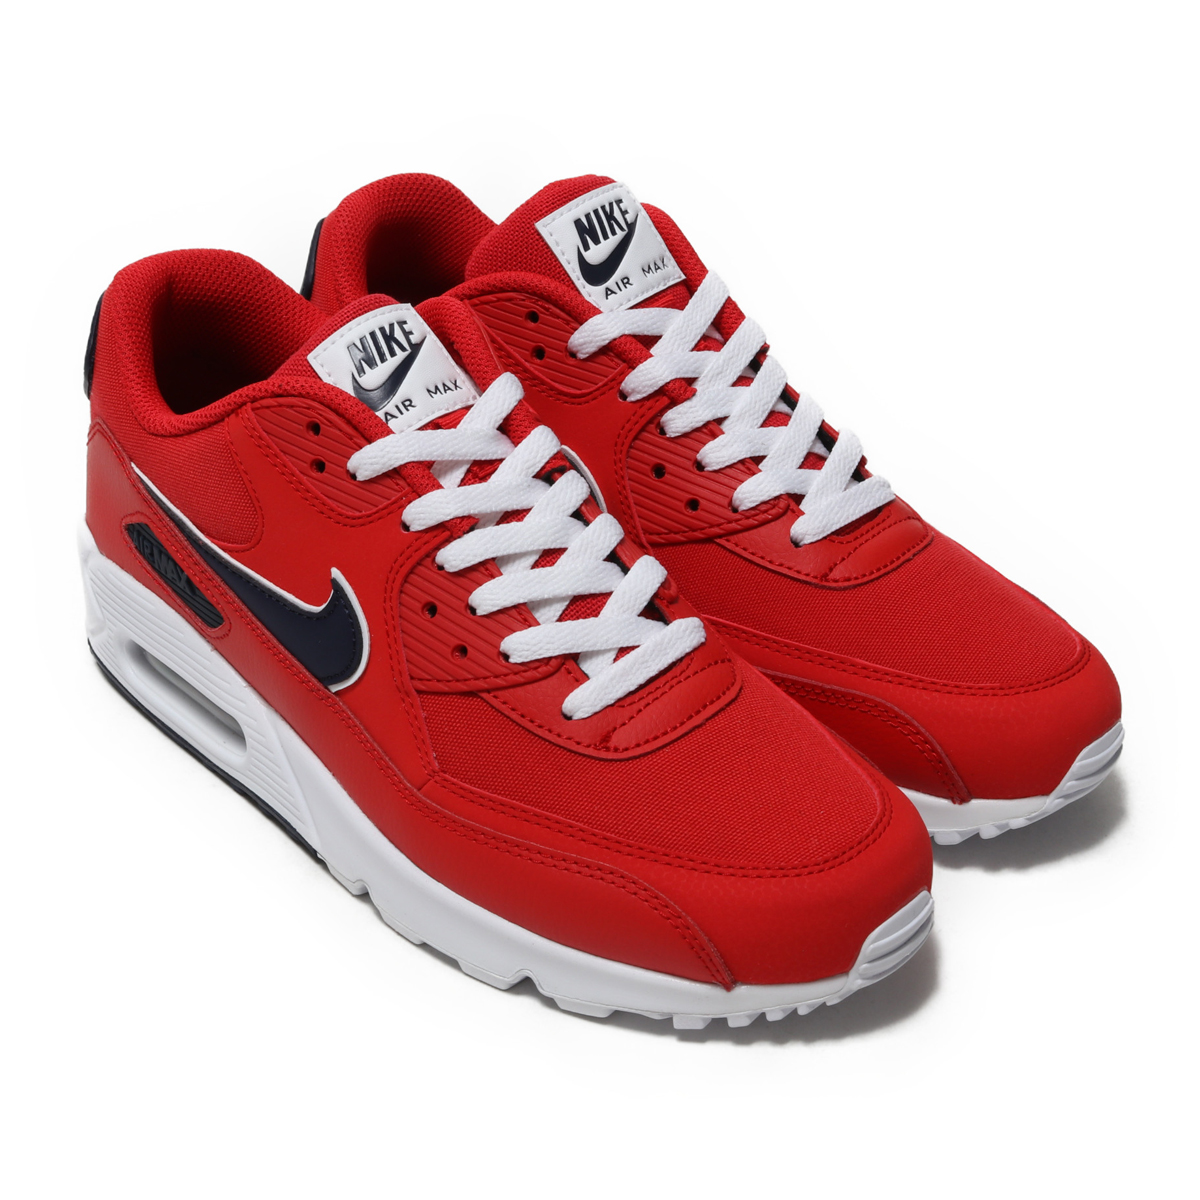 18aec047f9cc1 NIKE AIR MAX 90 ESSENTIAL (Kie Ney AMAX 90 essential) UNIVERSITY RED BLACKENED  BLUE-WHITE 18FA-I